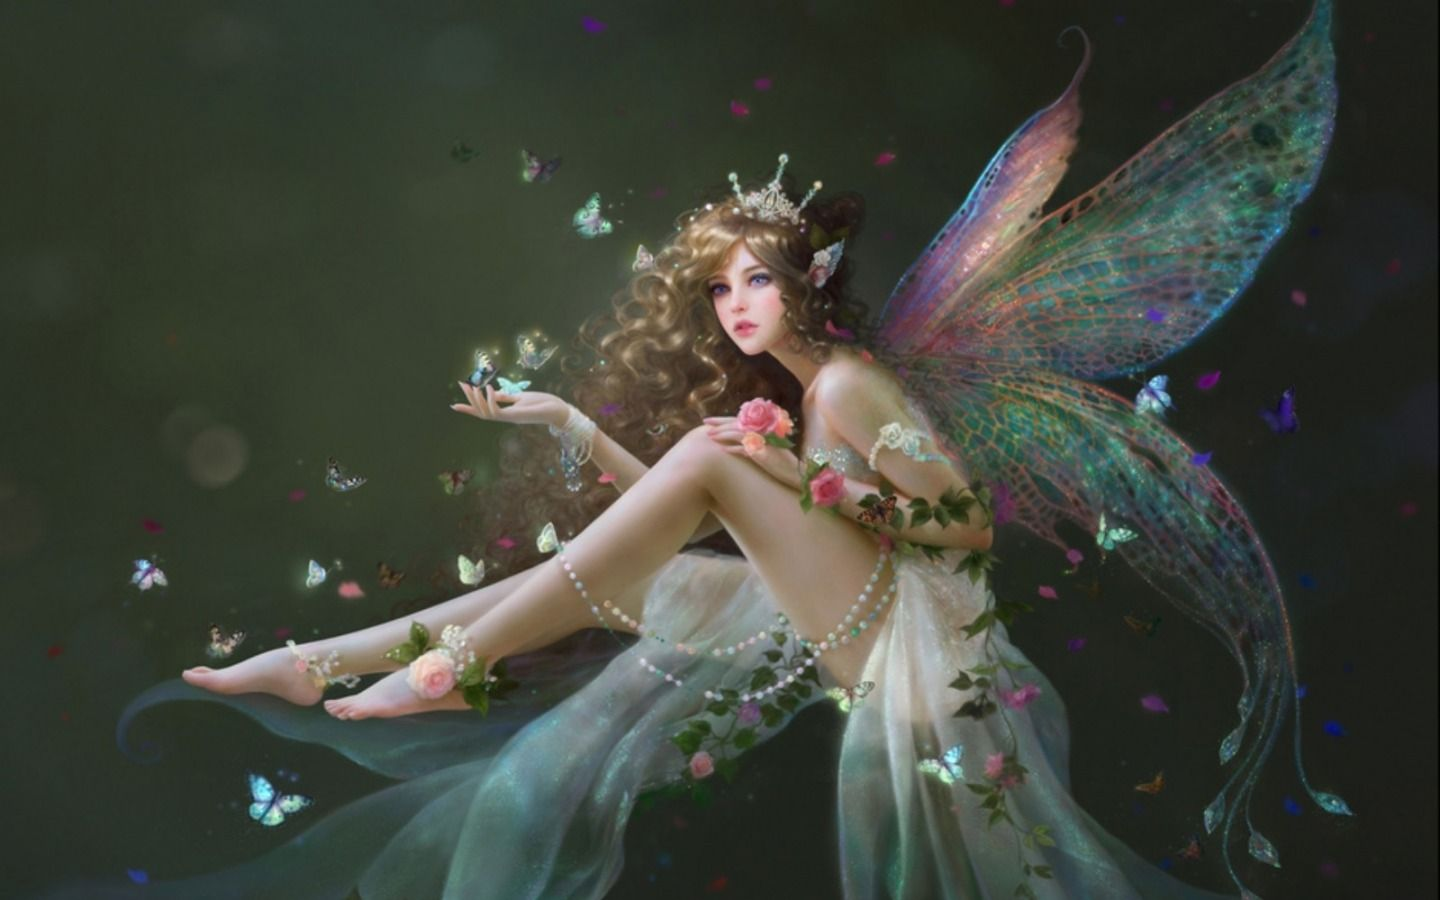 Desktop Fairy Wallpaper Hd Desktop Fairy Wallpaper Hd Iphone